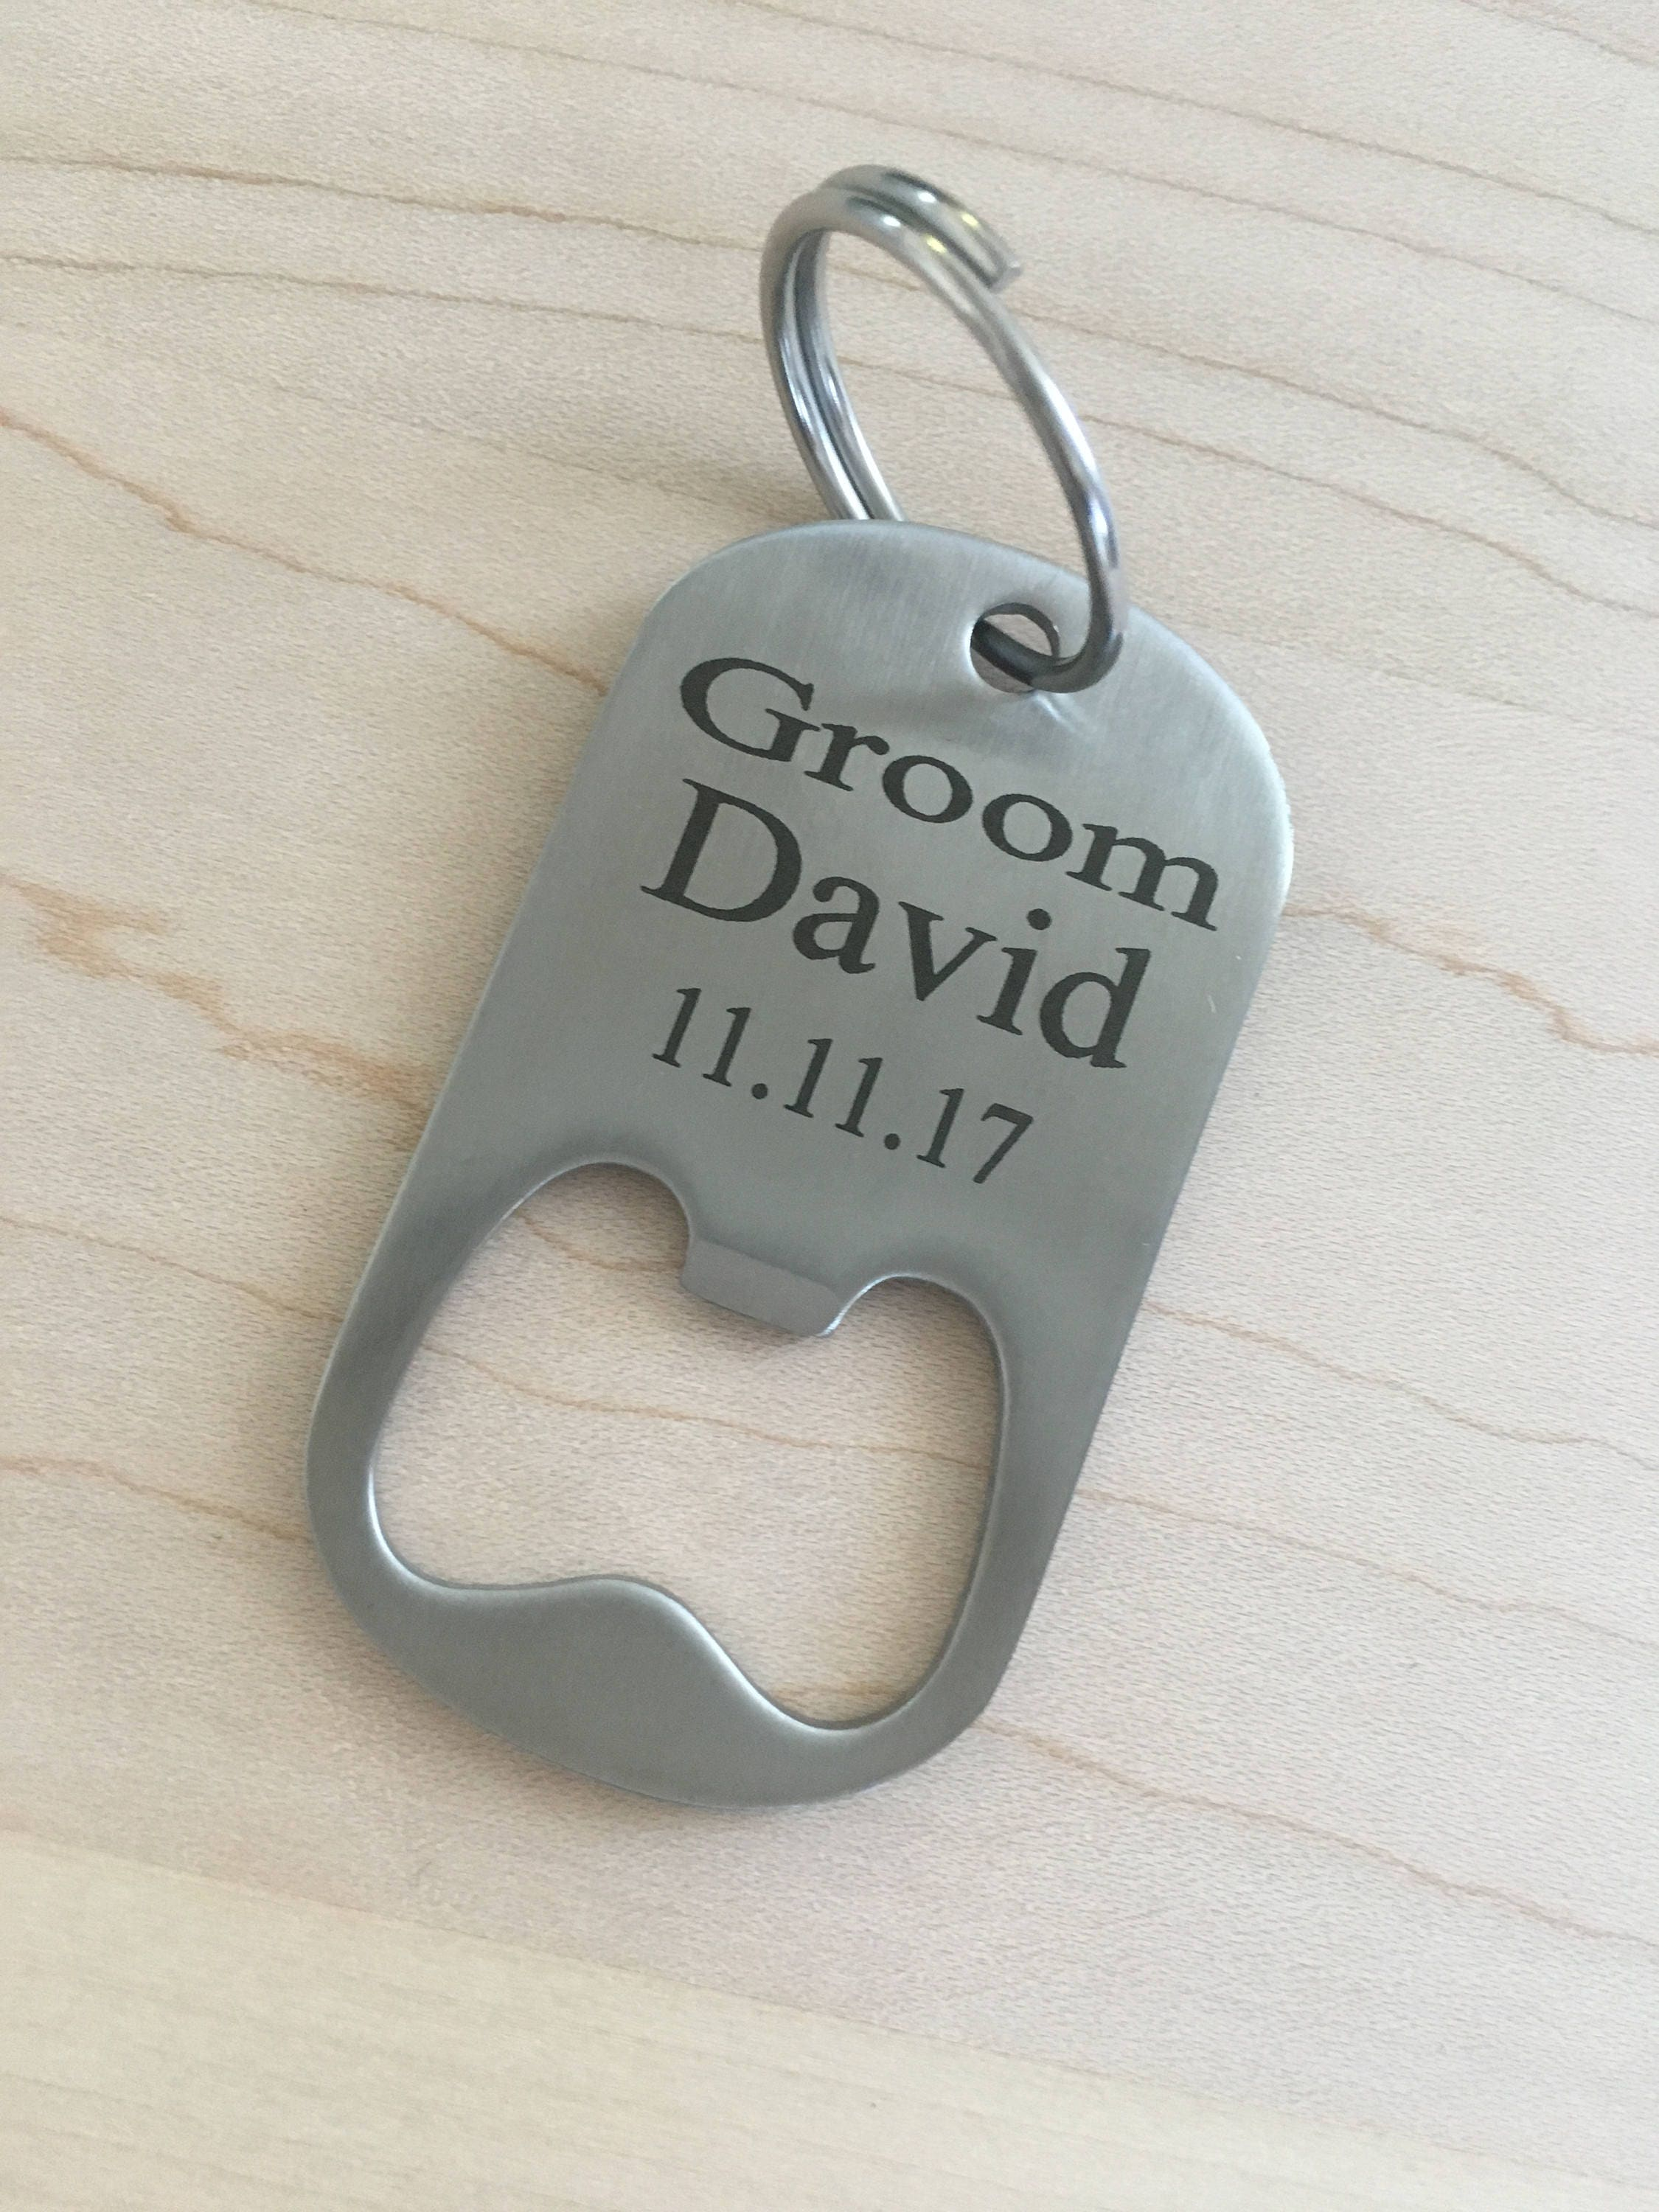 personalized bottle opener key chain bottle opener laser. Black Bedroom Furniture Sets. Home Design Ideas